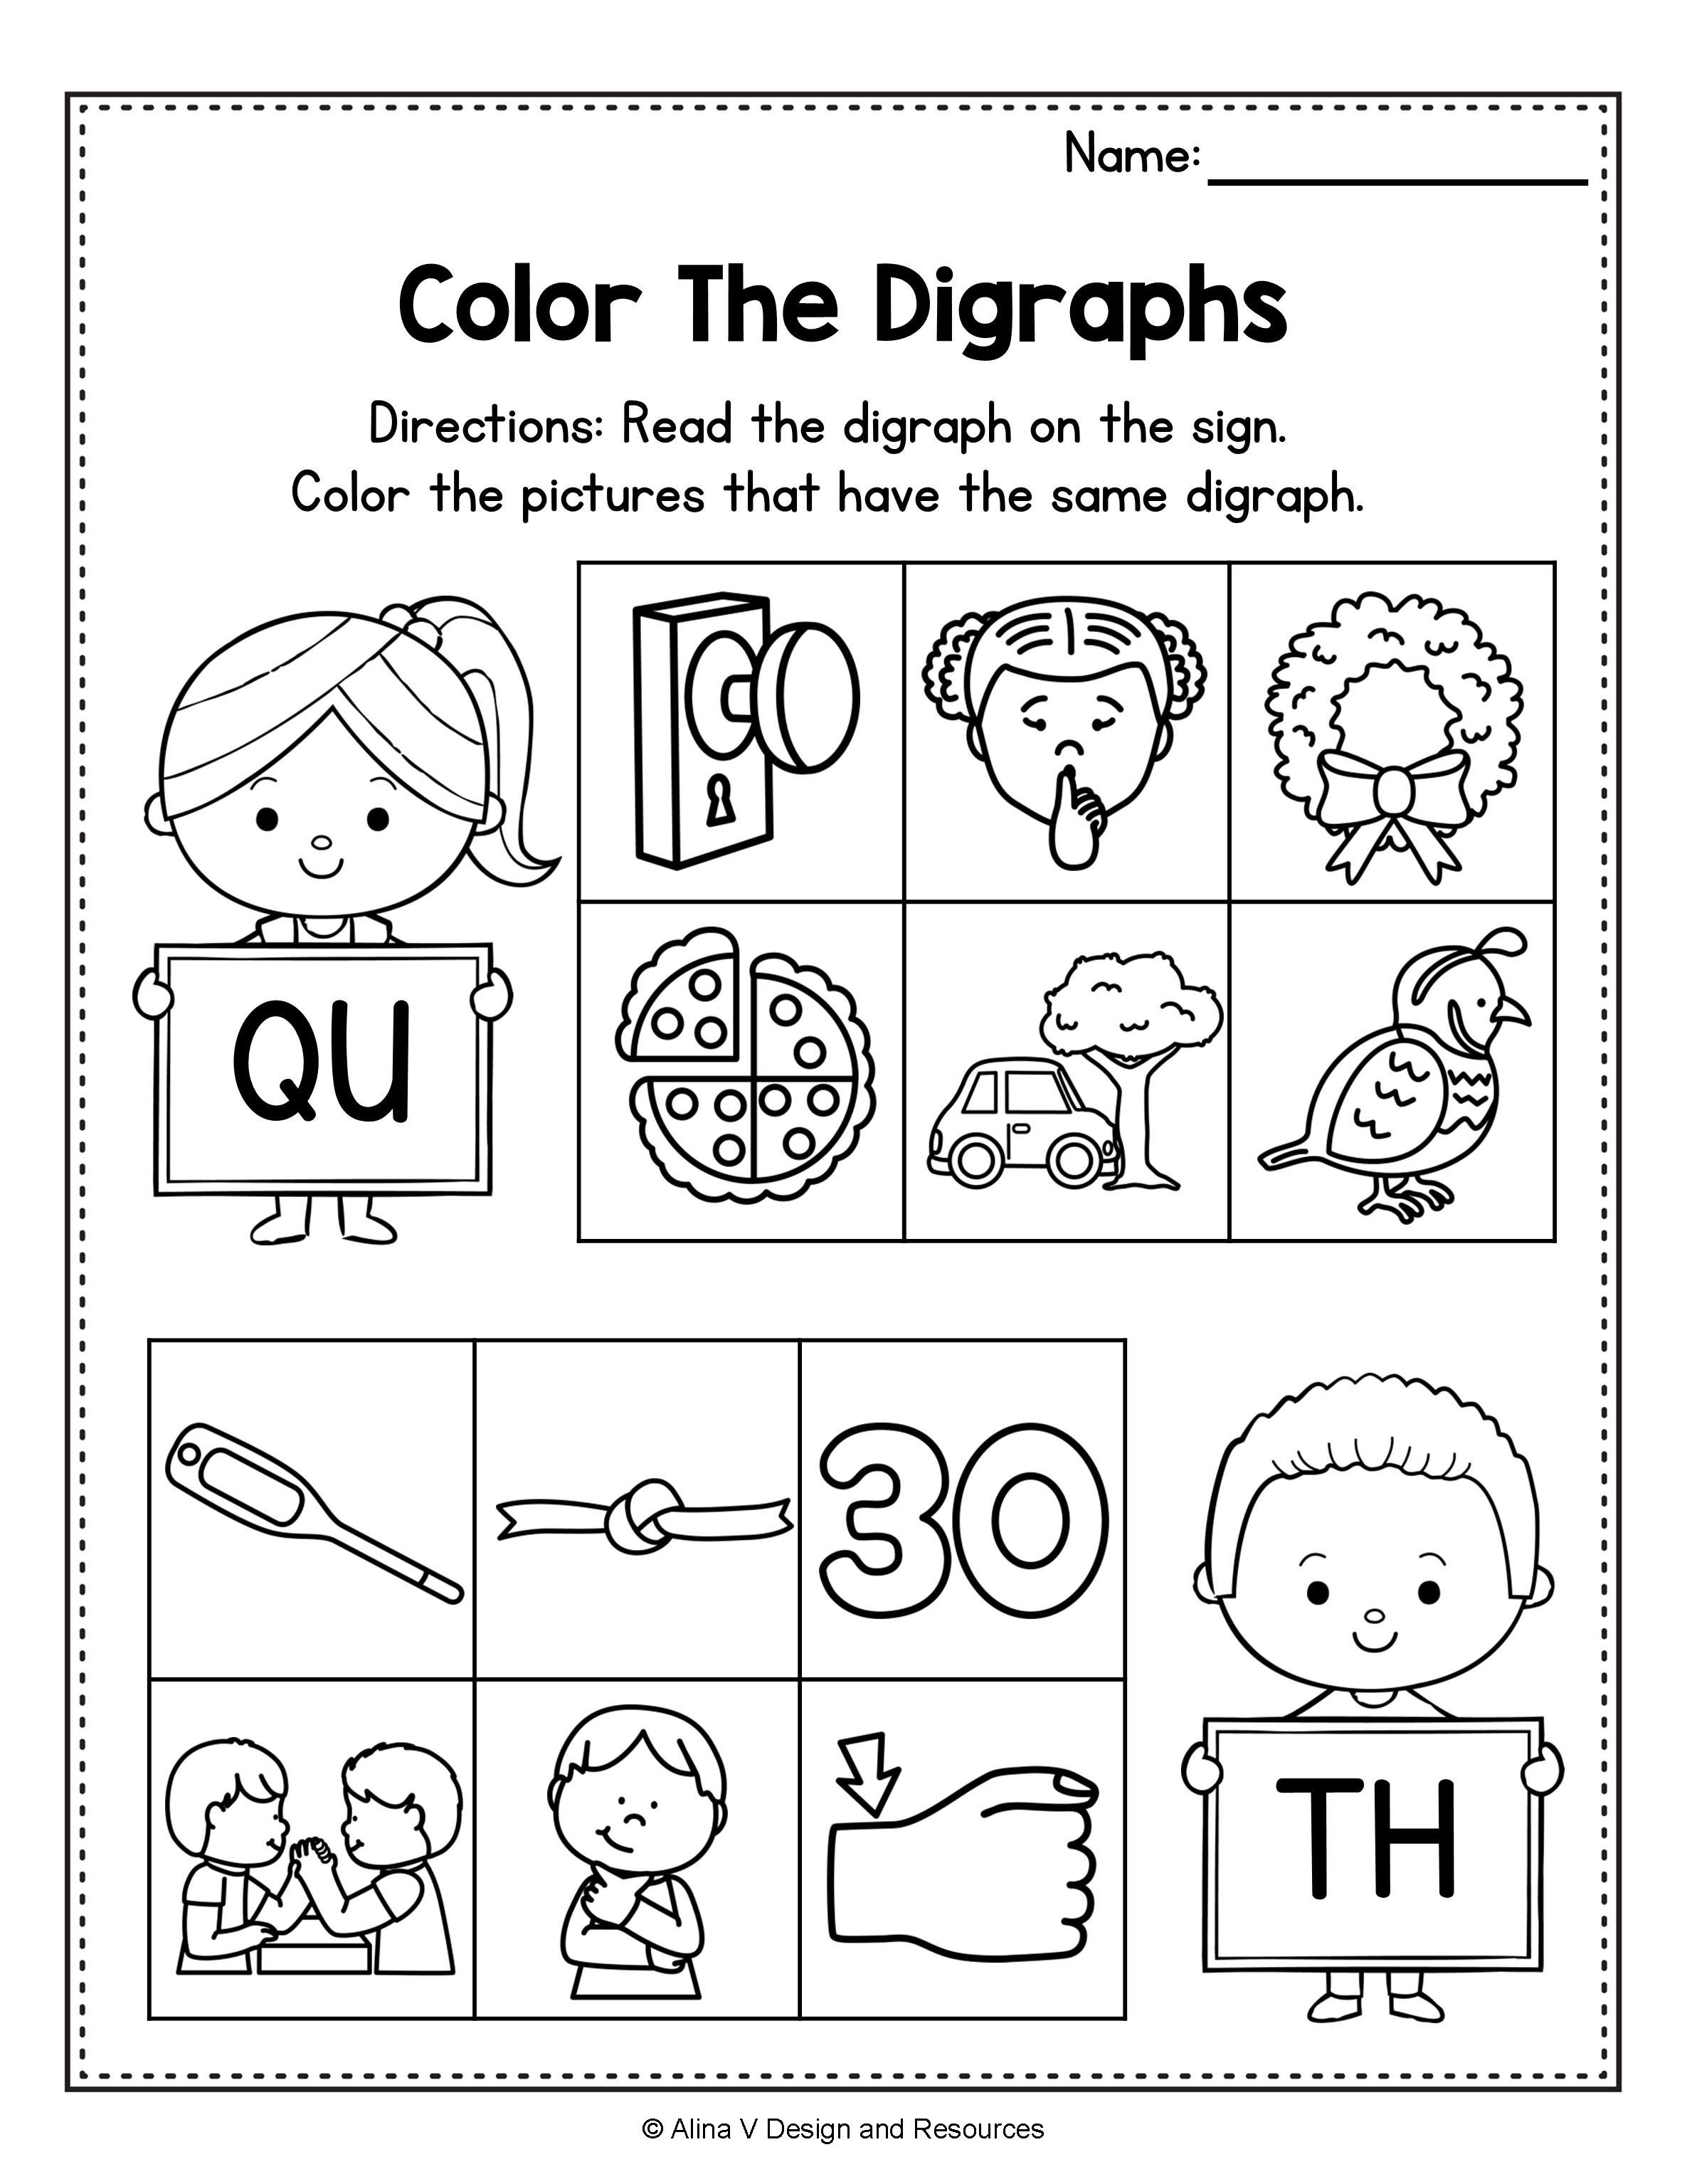 Consonant Digraphs Worksheets Sh Ch Th Wh Ph Kn Wr Qu Writing Mini Lessons Digraph 2nd Grade Activities [ 3069 x 2371 Pixel ]